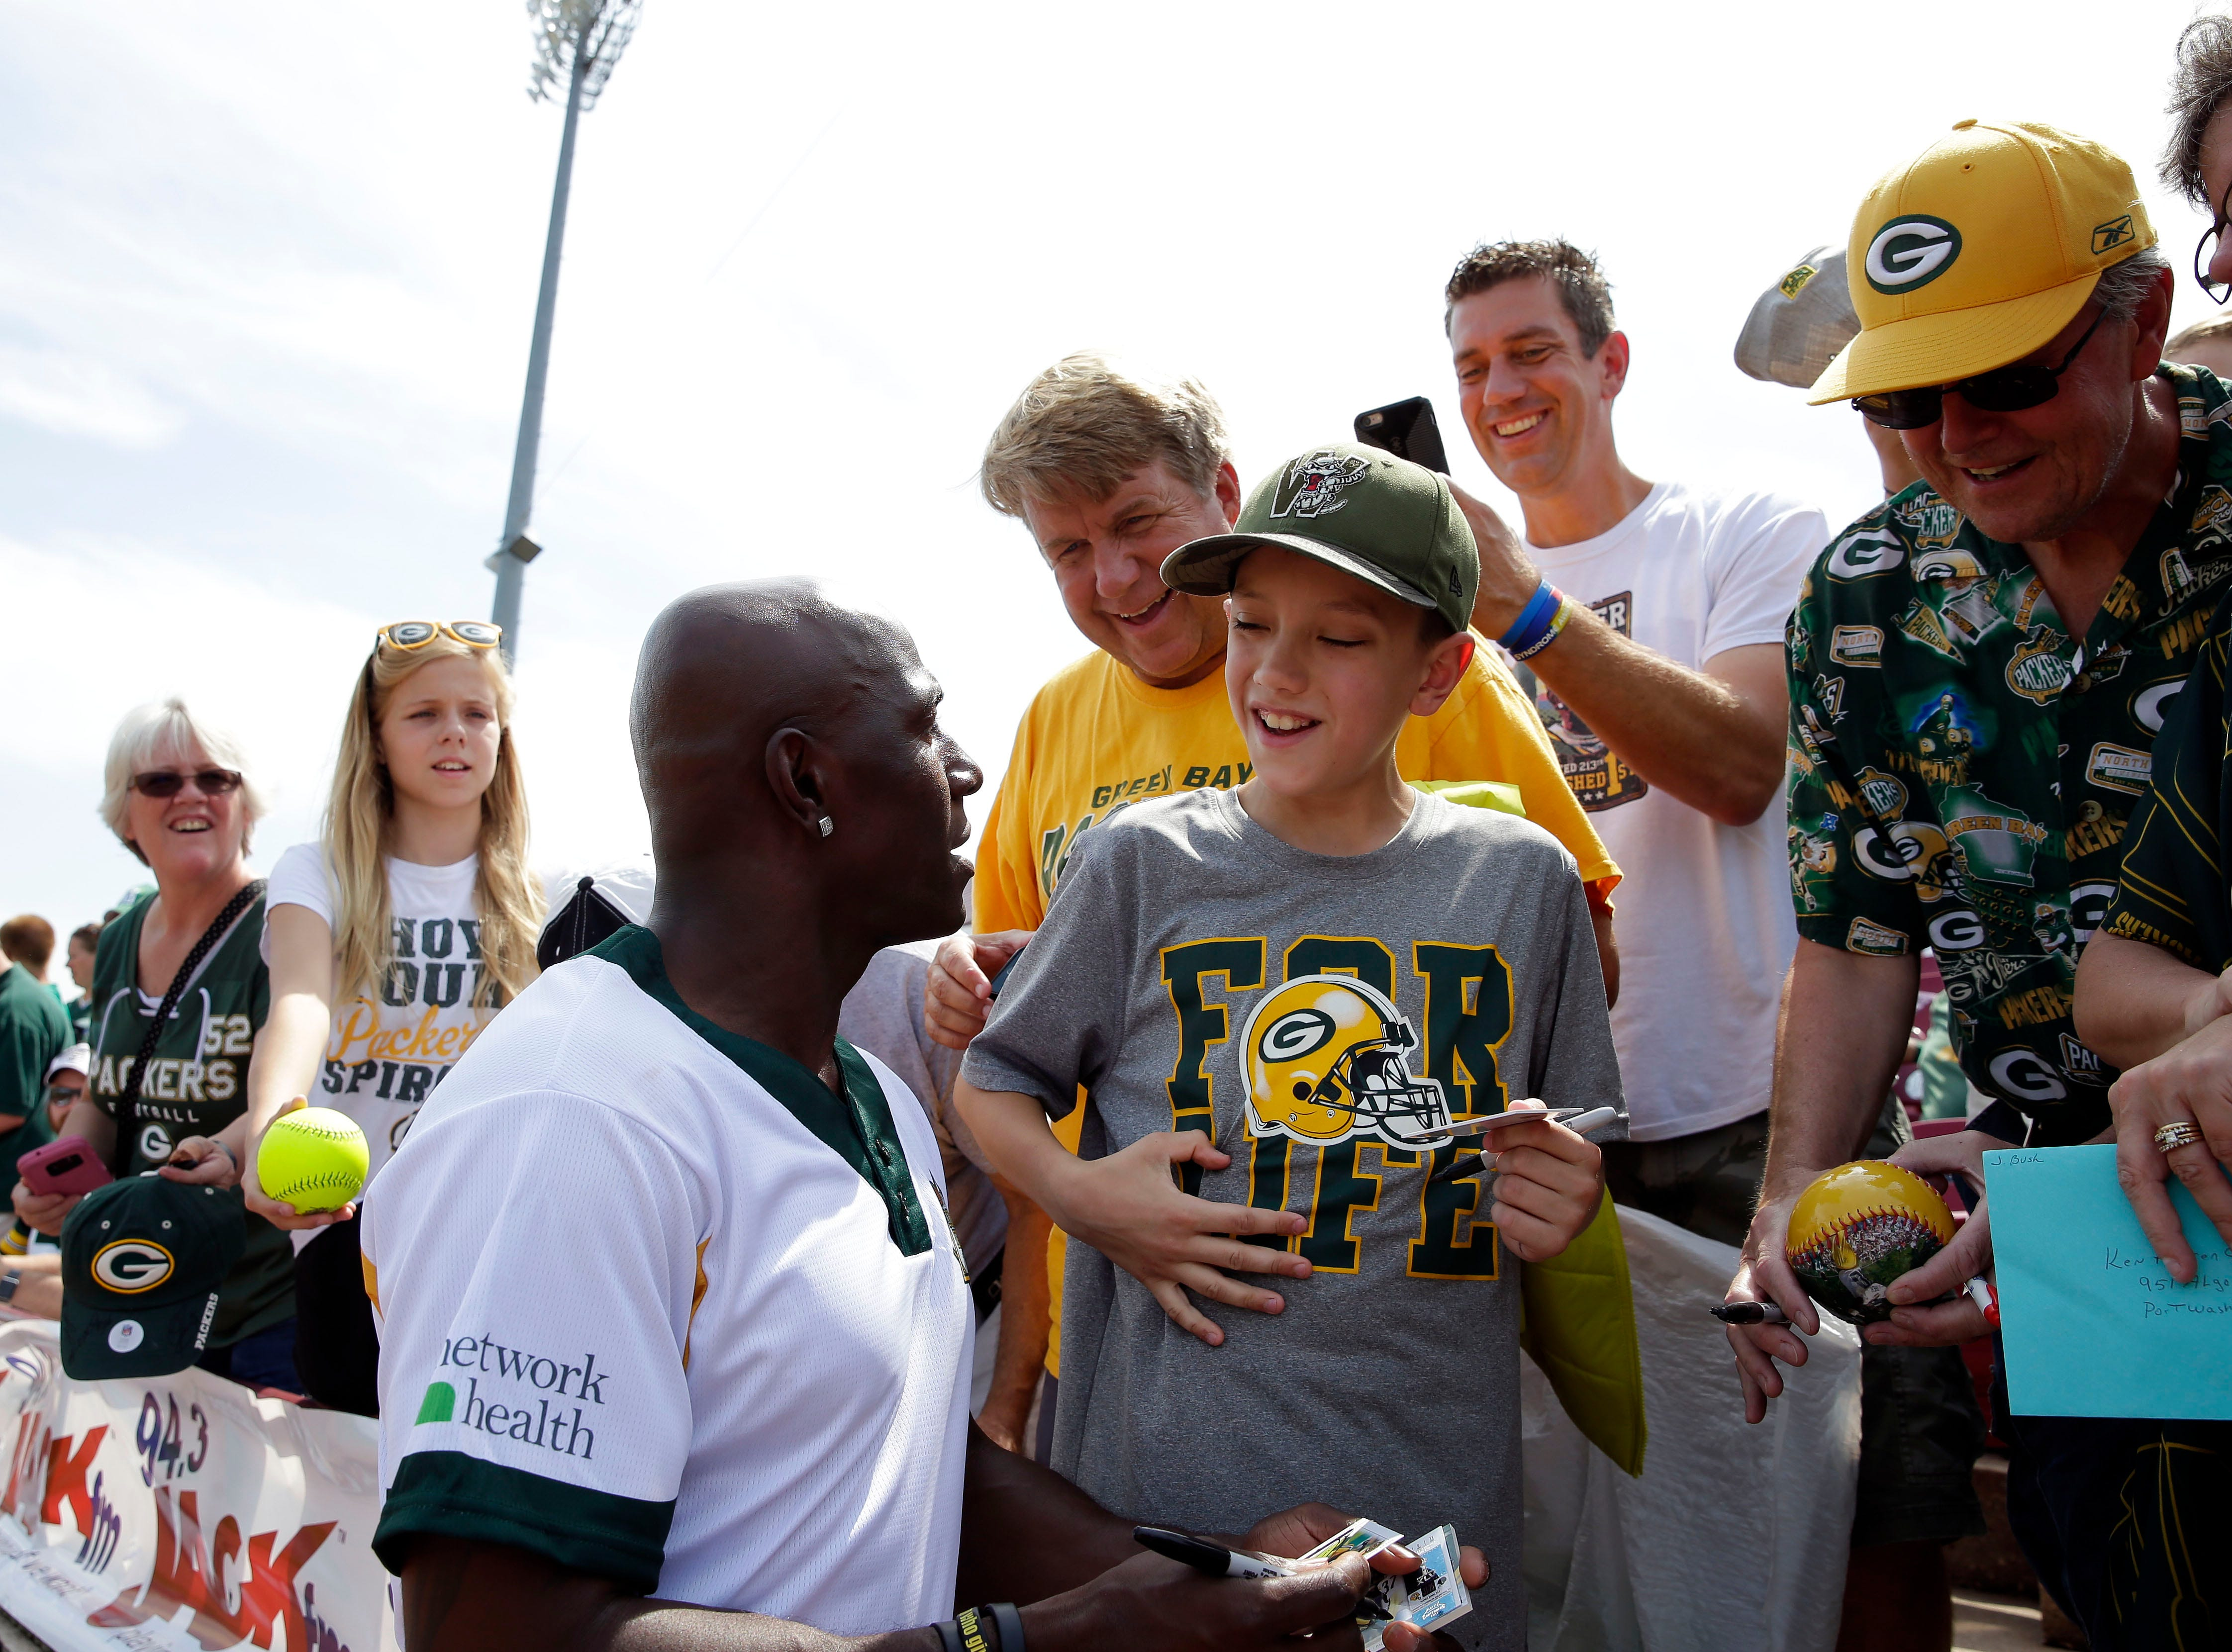 Lincoln Derks of Neenah talks with Donald Driver before the charity softball game Sunday, August 5, 2018, at Neuroscience Group Field at Fox Cities Stadium in Grand Chute, Wis.